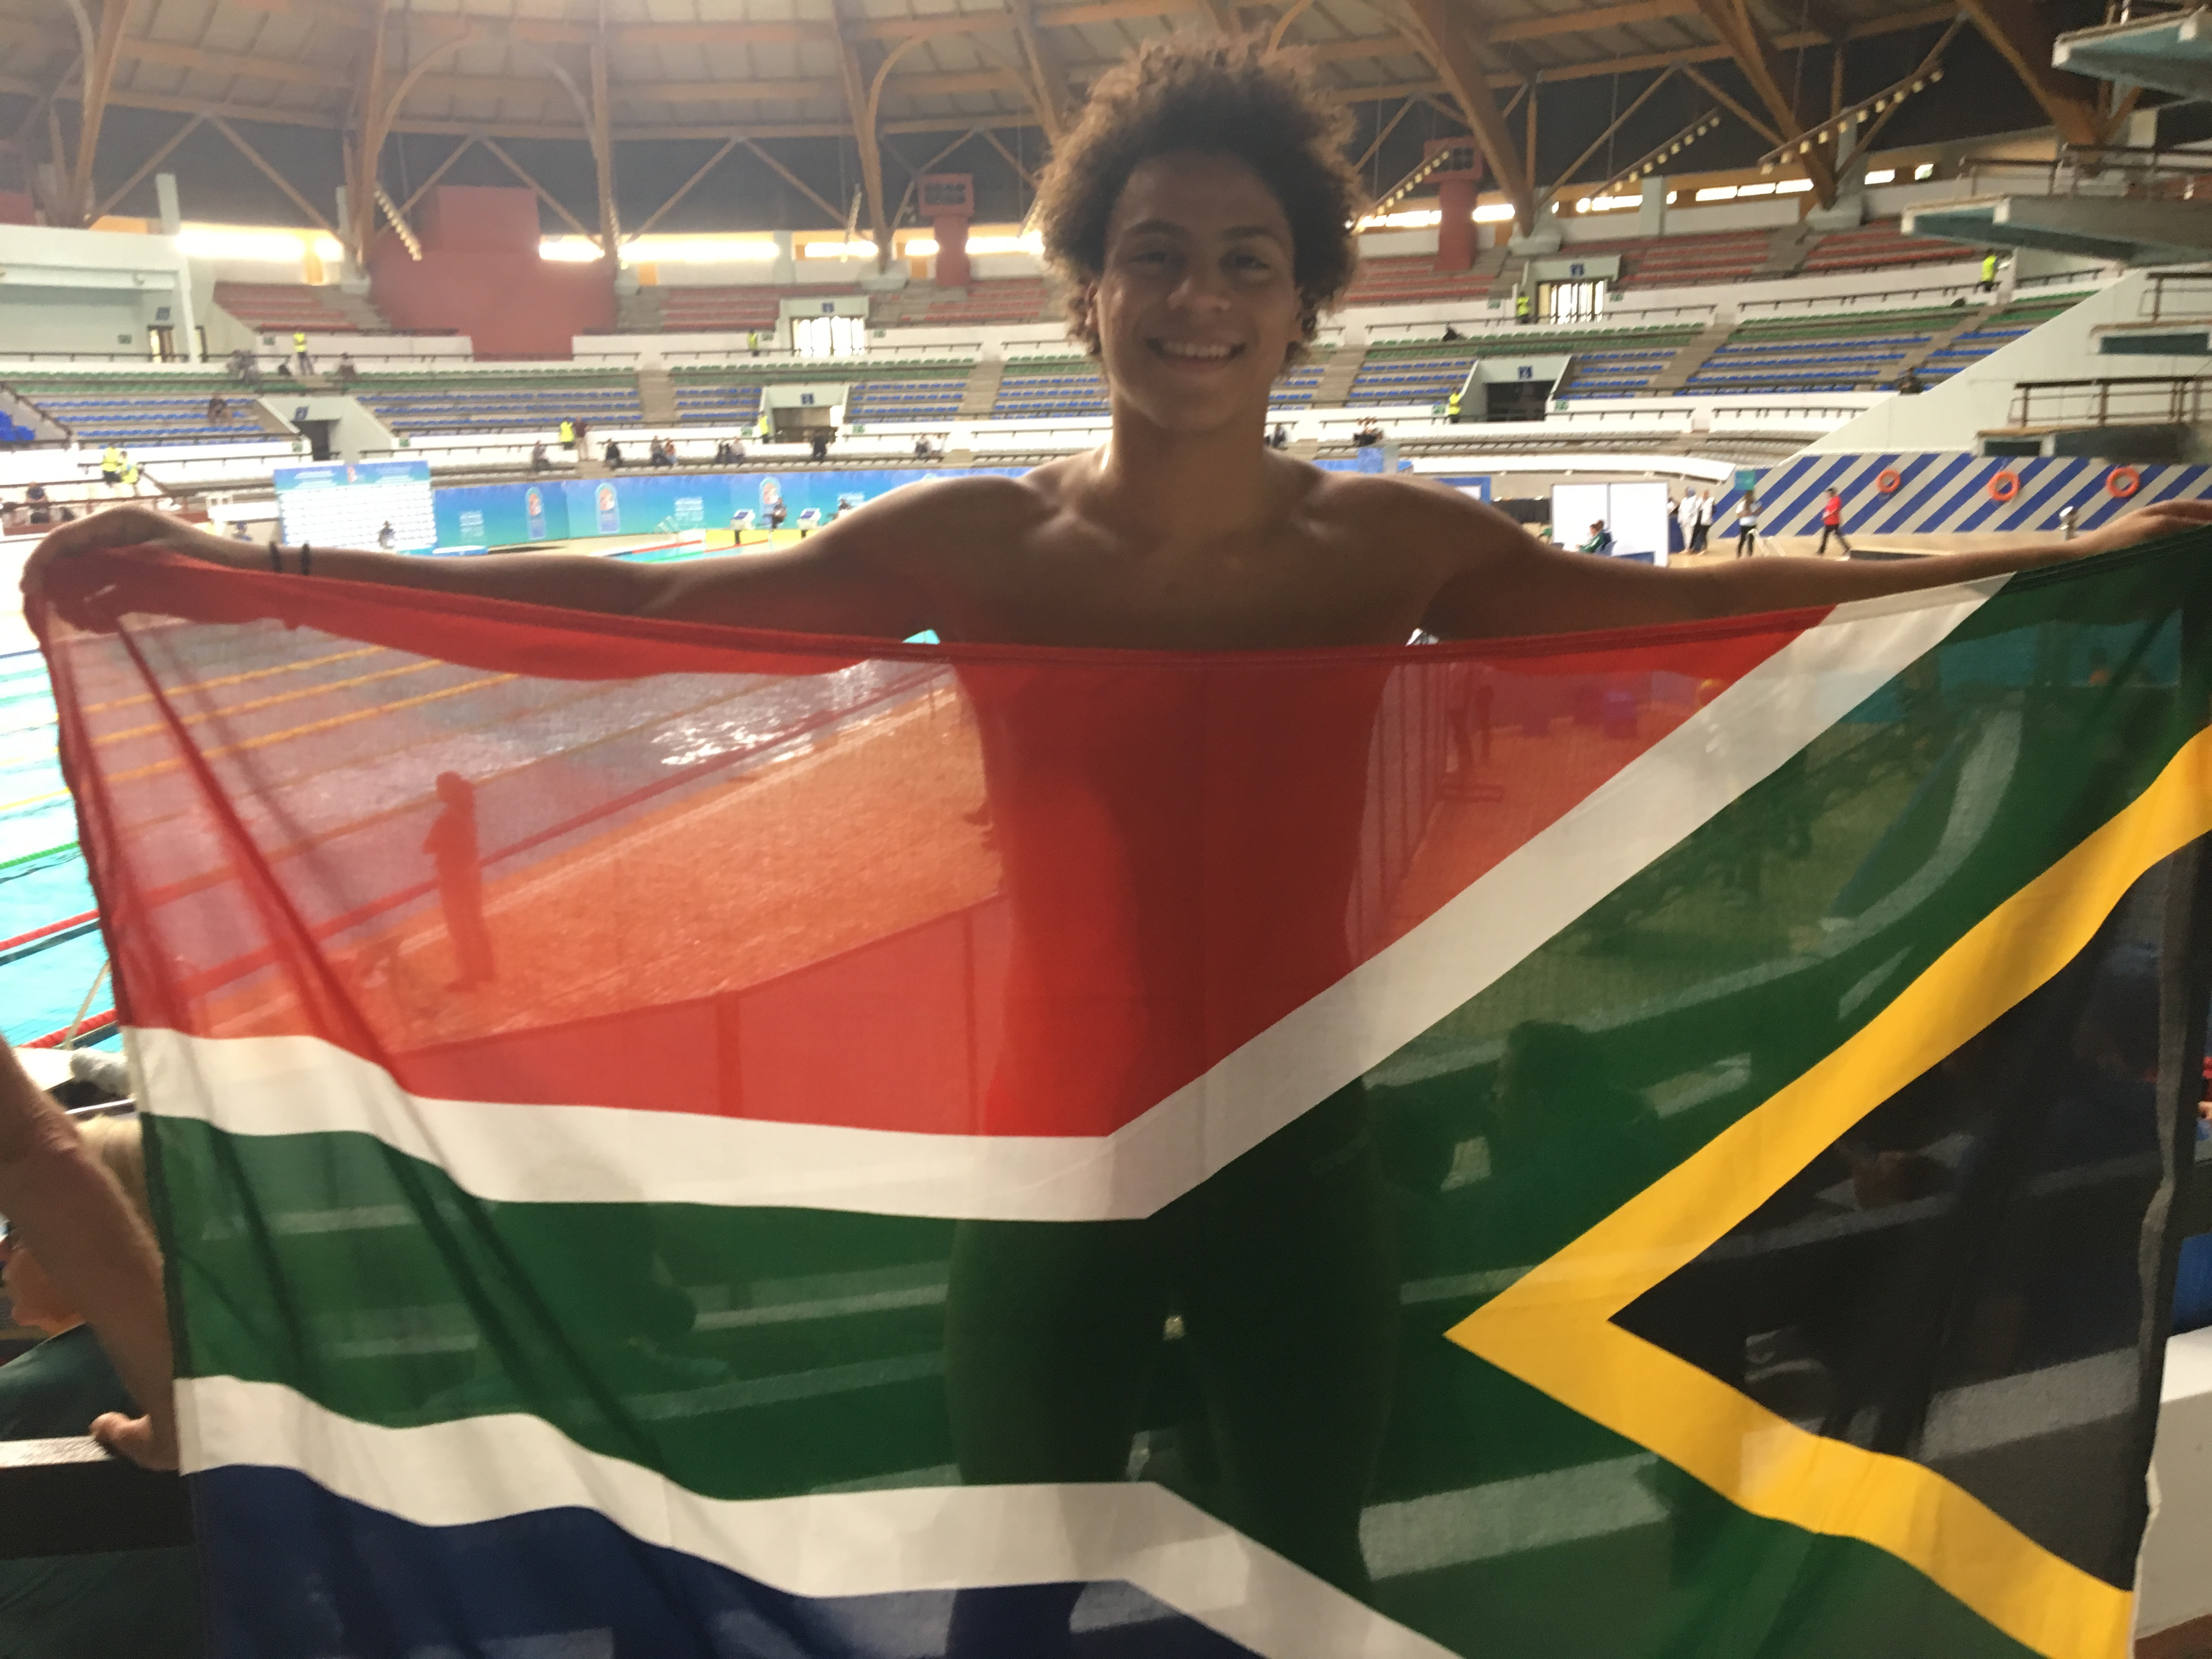 How Team SA fared on Wednesday